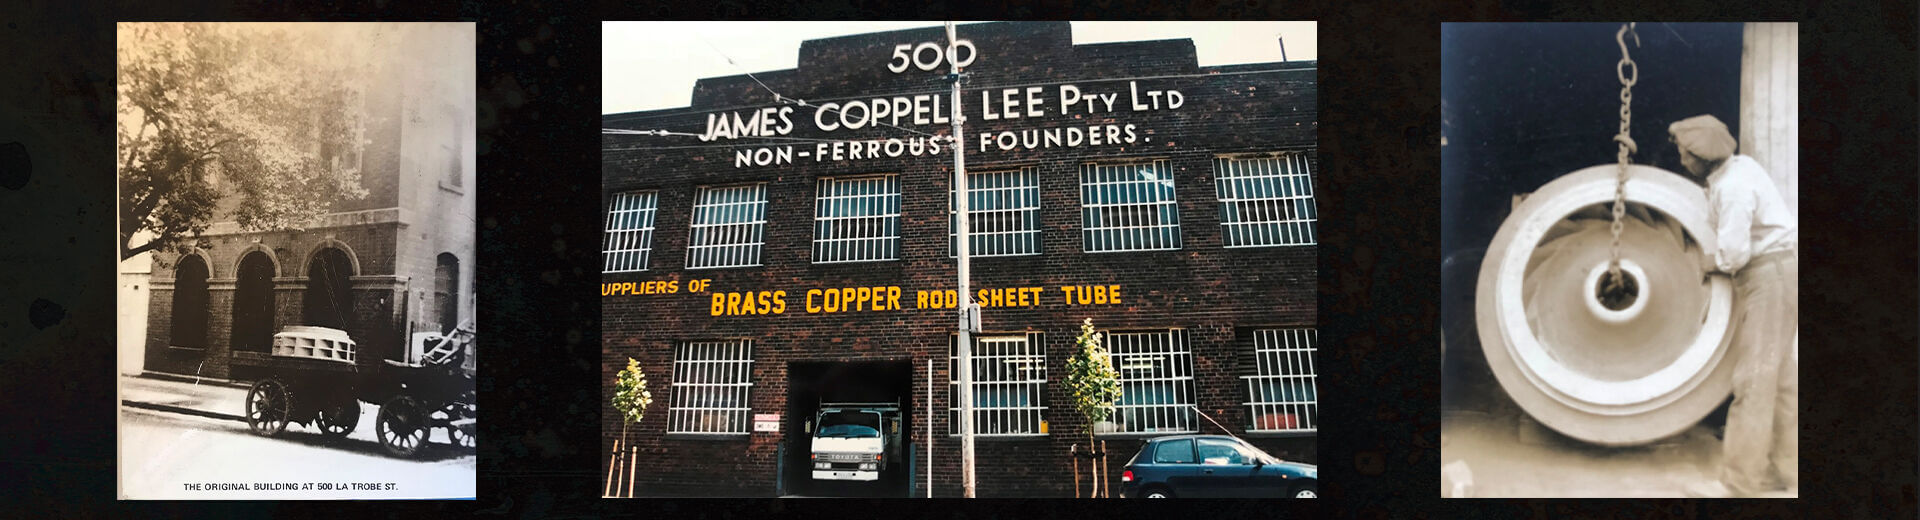 James Coppell Lee Foundry